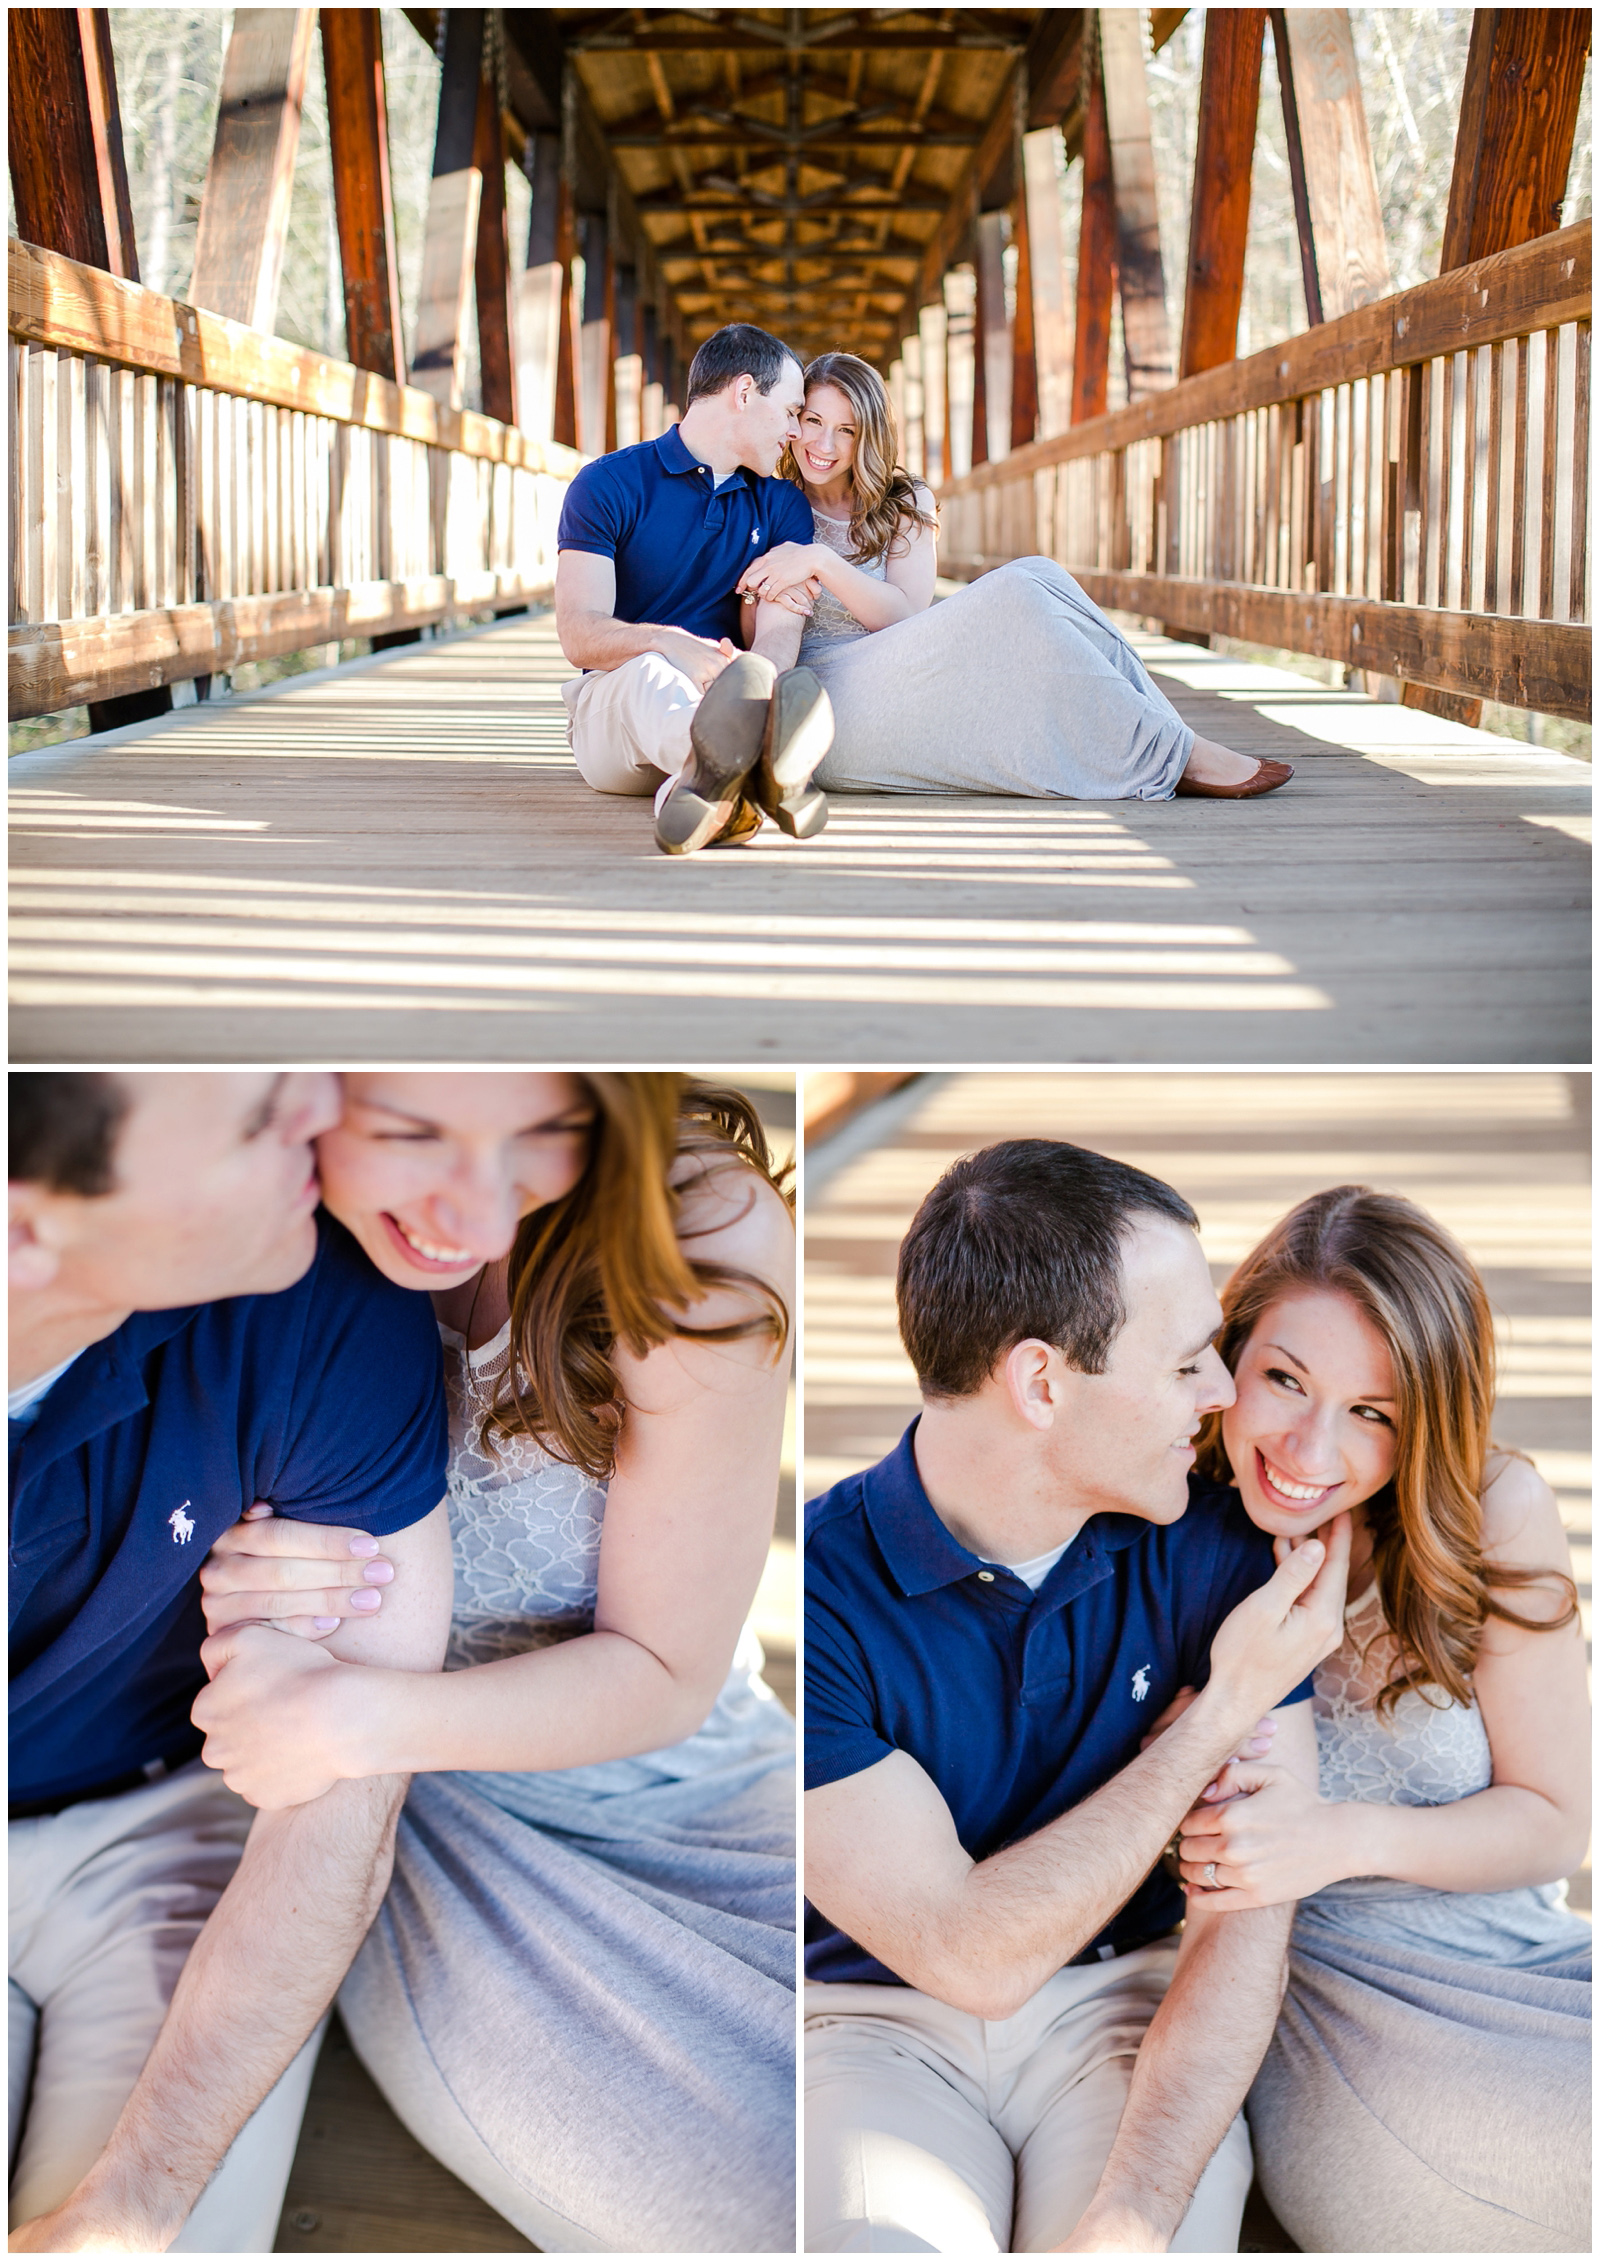 ArdentStoryHannahDavidEngaged_AtlantaEngagement_0015